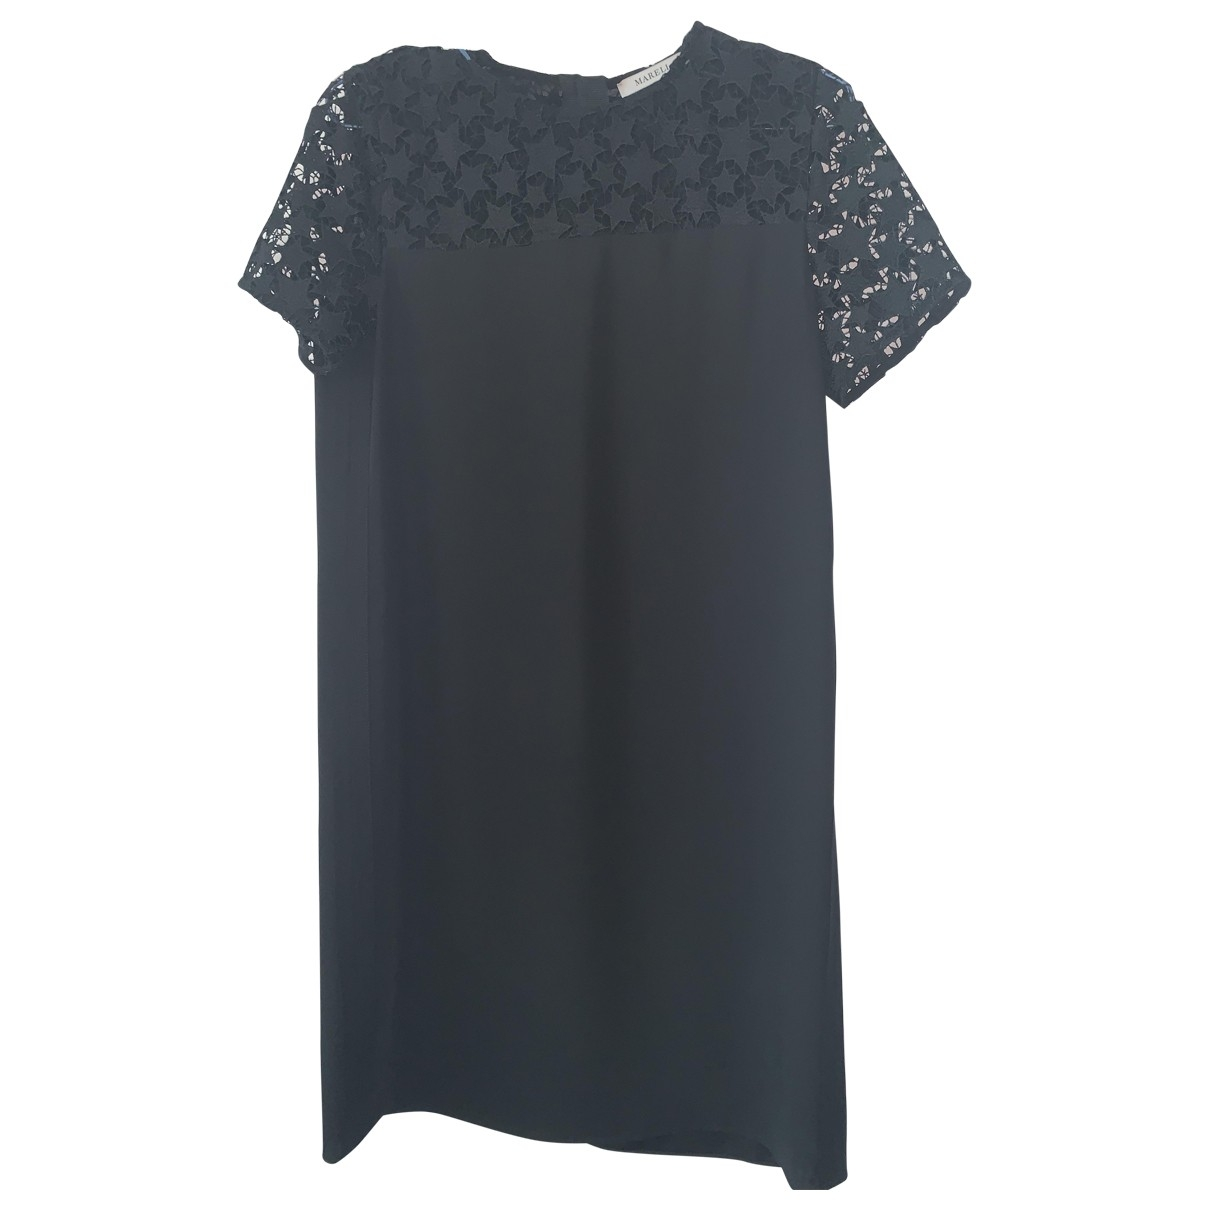 Marella \N Black dress for Women 36 FR